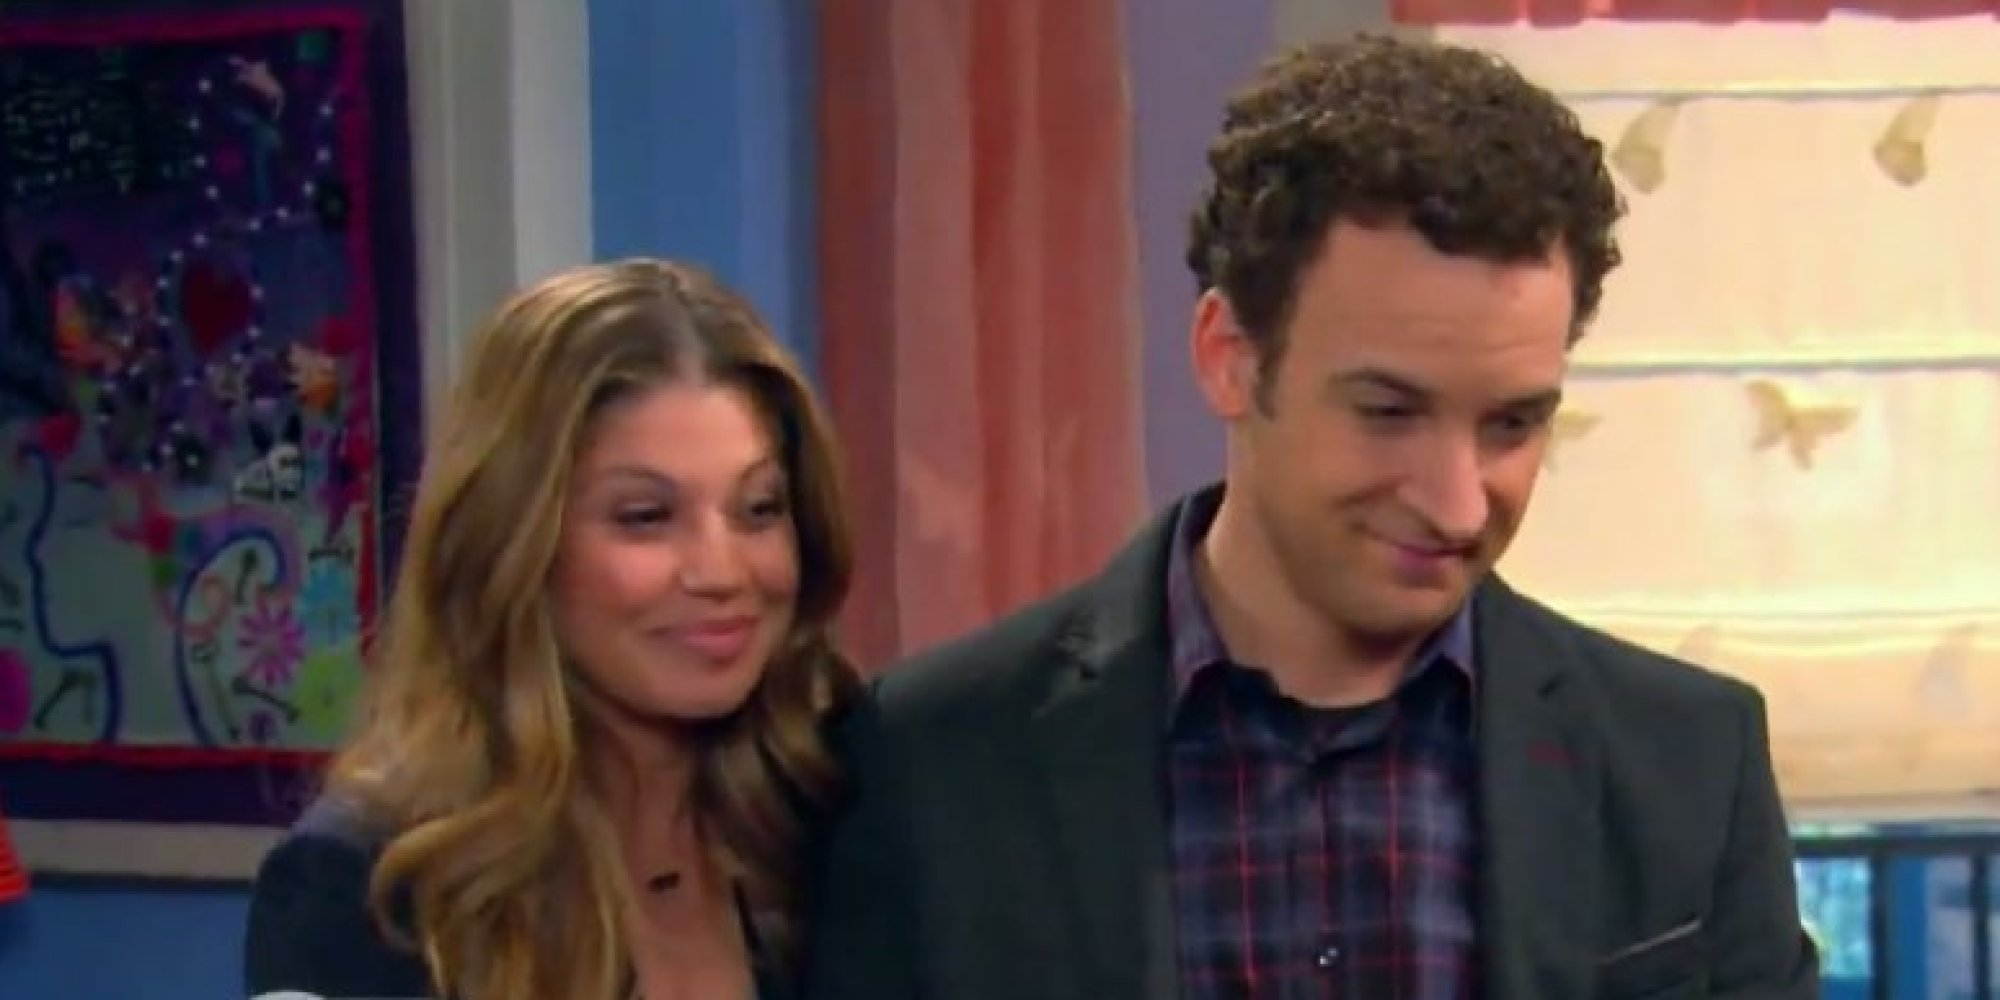 Audition tape for girl meets world